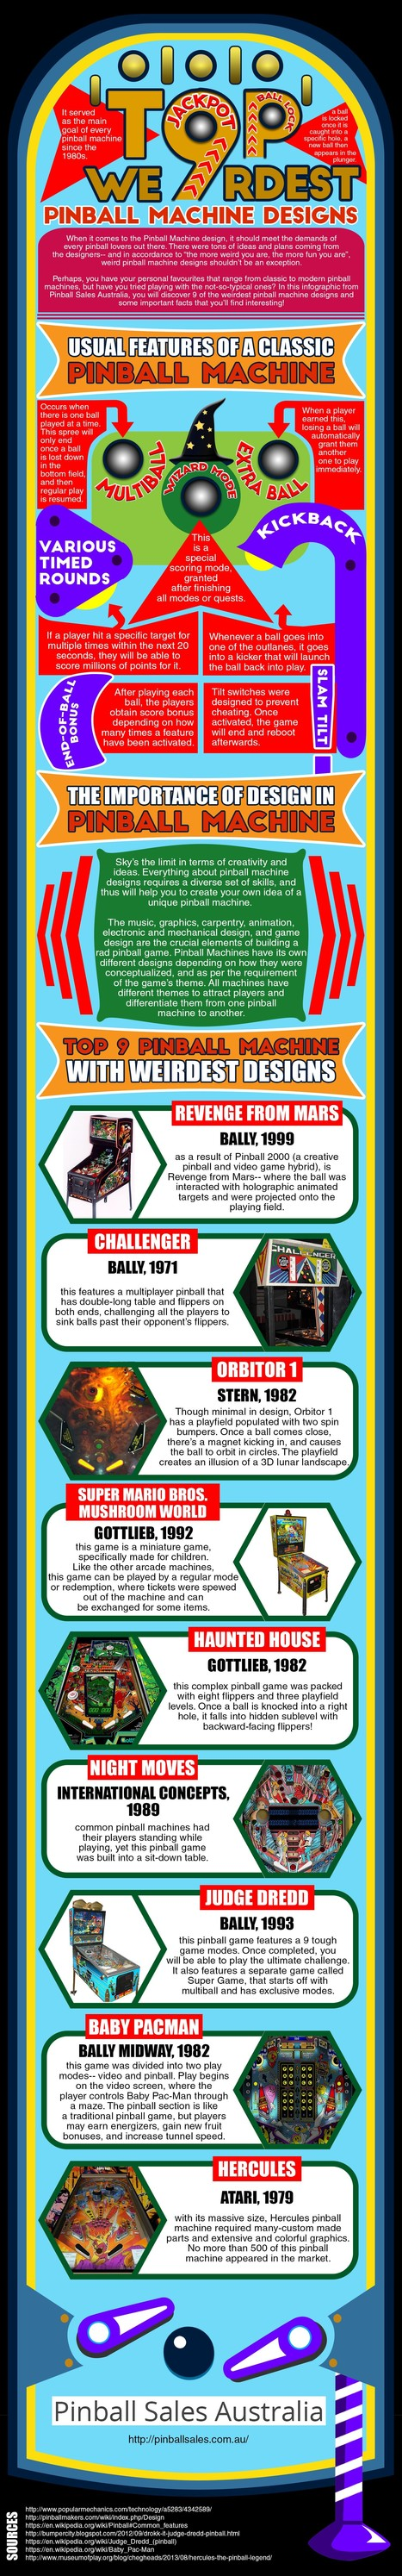 Top 10 Weirdest Pinball Machines since 1970 | All Infographics | Scoop.it